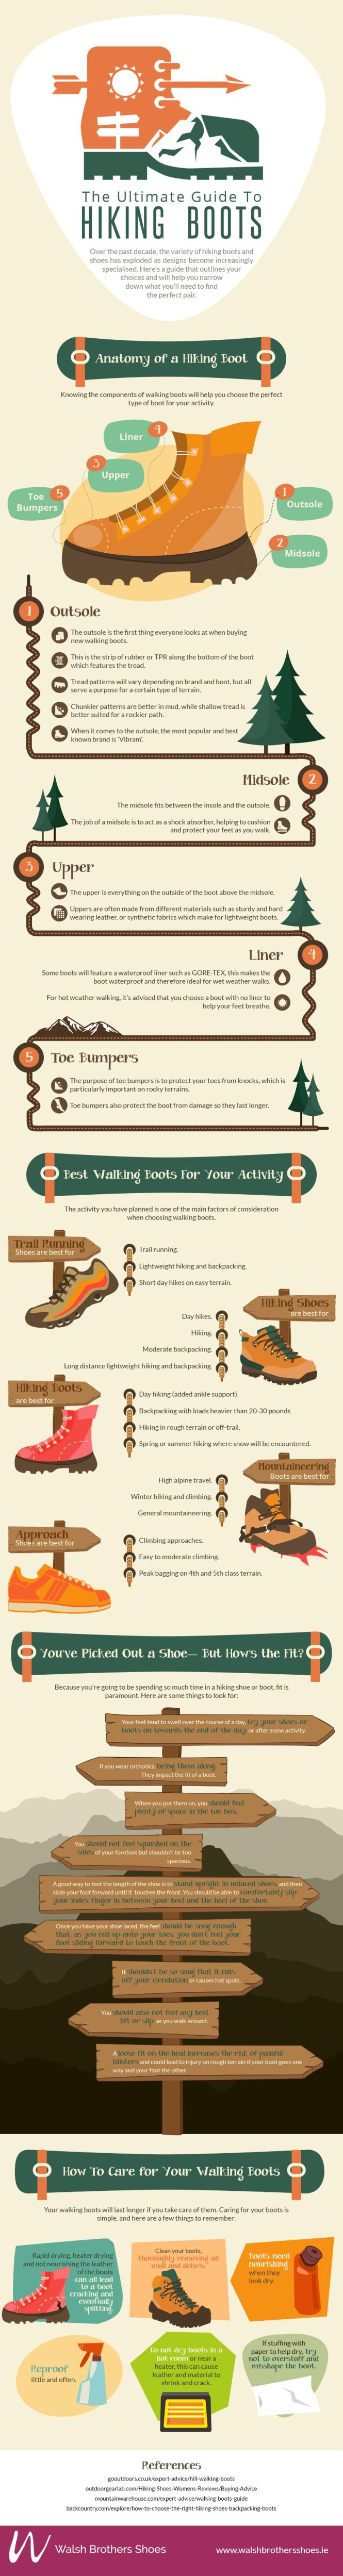 hiking_boots_infographic